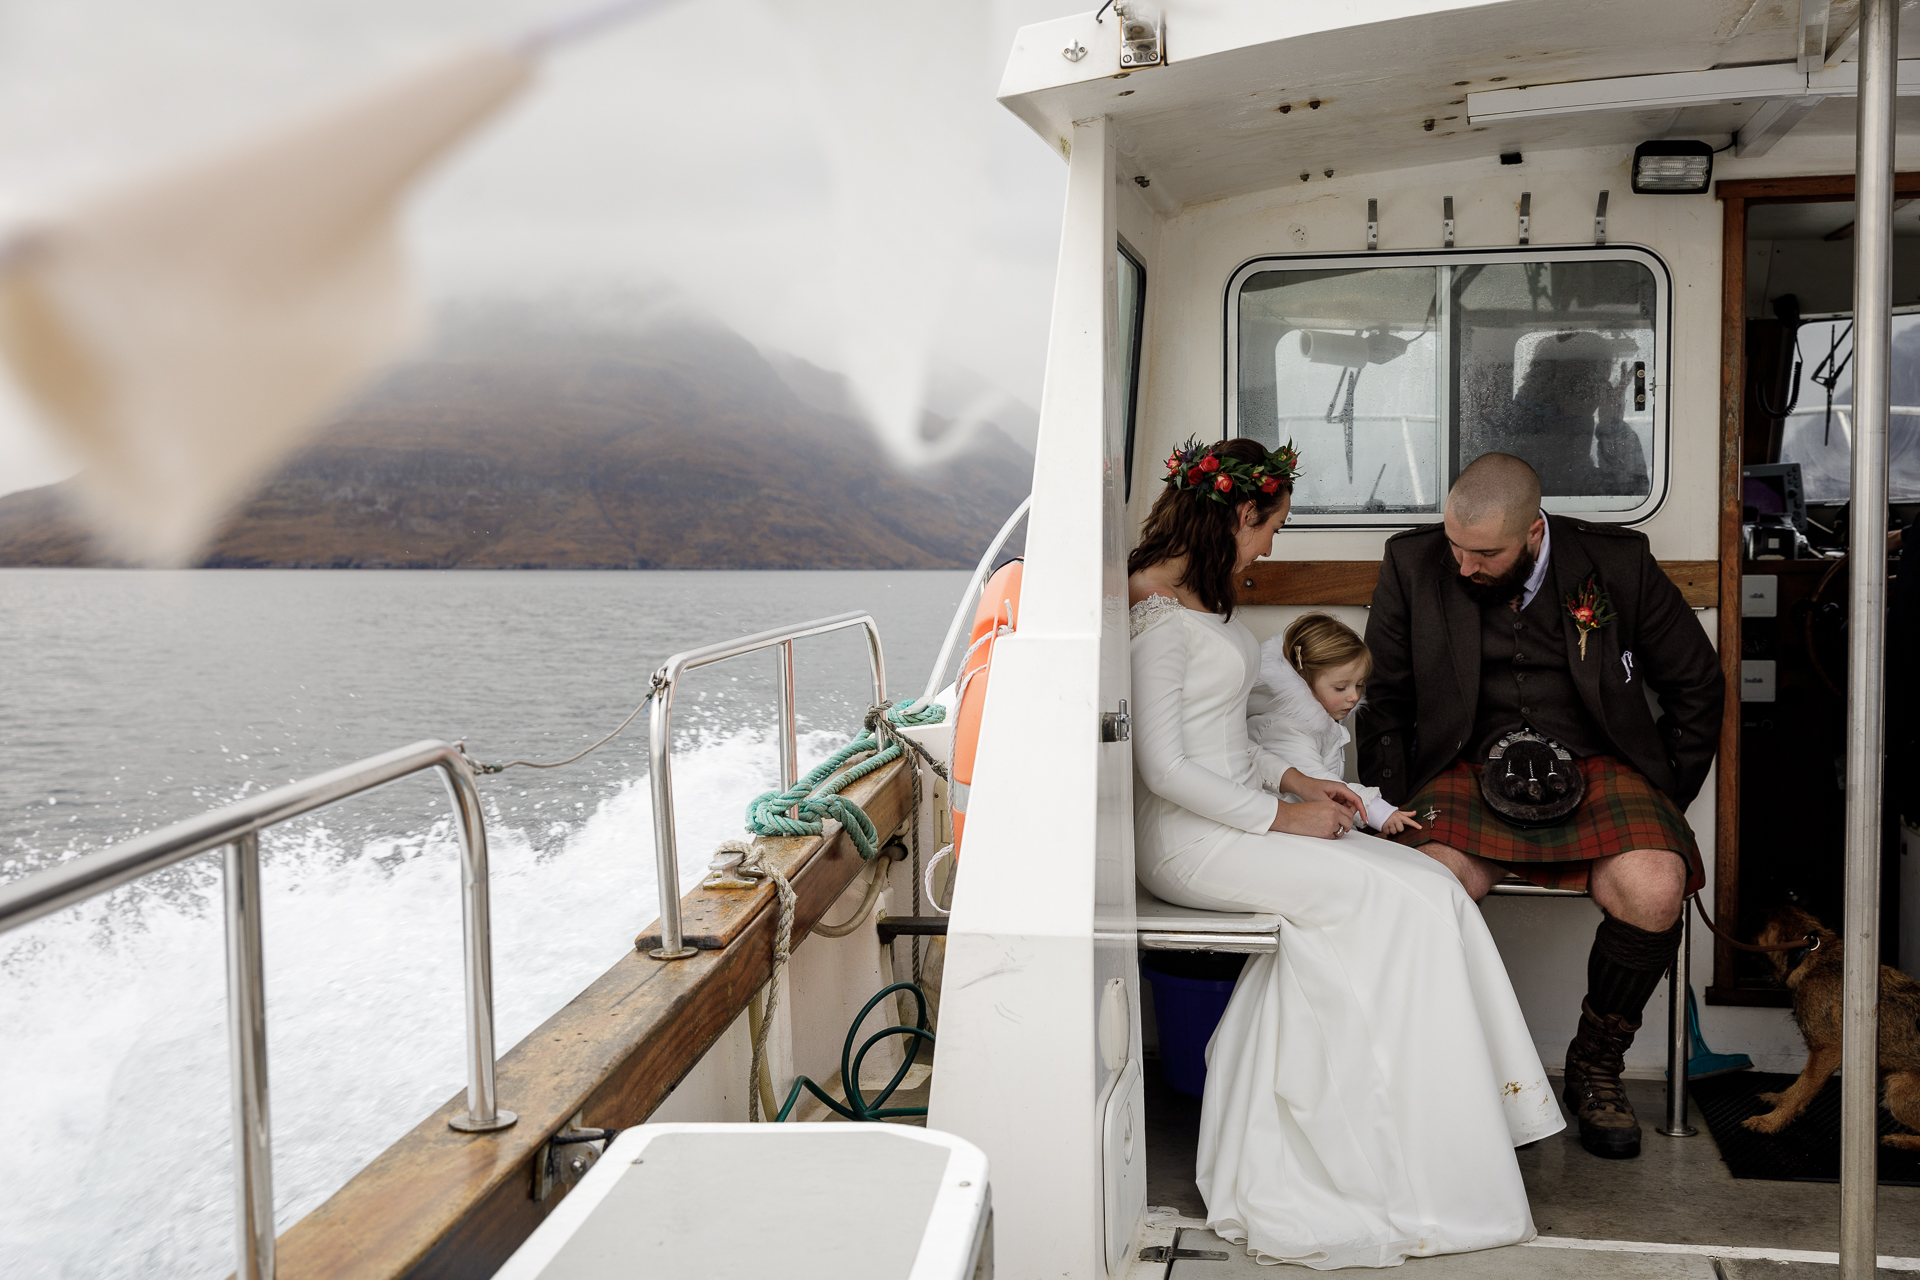 Isle of Skye, Scotland Elopement Image | It was a little windy on the 30 minute boat trip so the couple and their daughter stayed under cover until we reached the jetty where we were to get off the boat